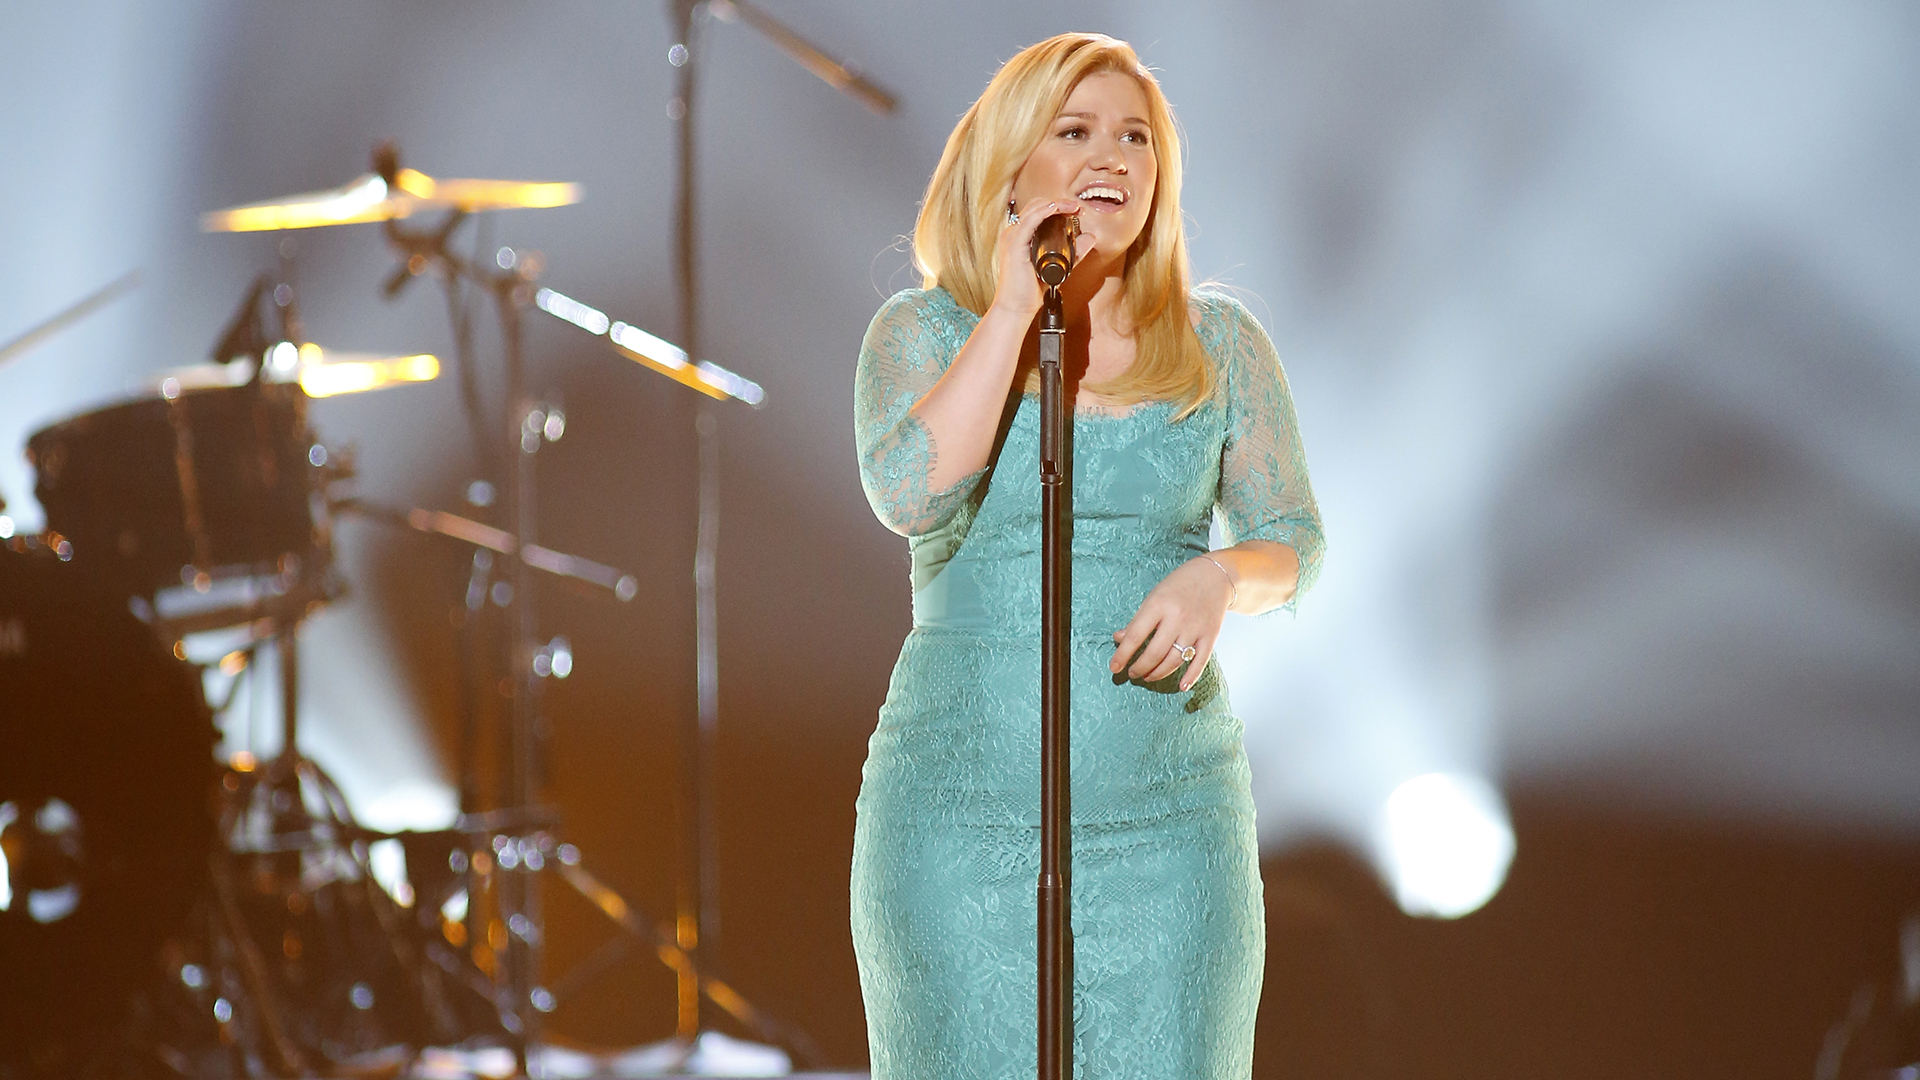 6. Kelly Clarkson performs